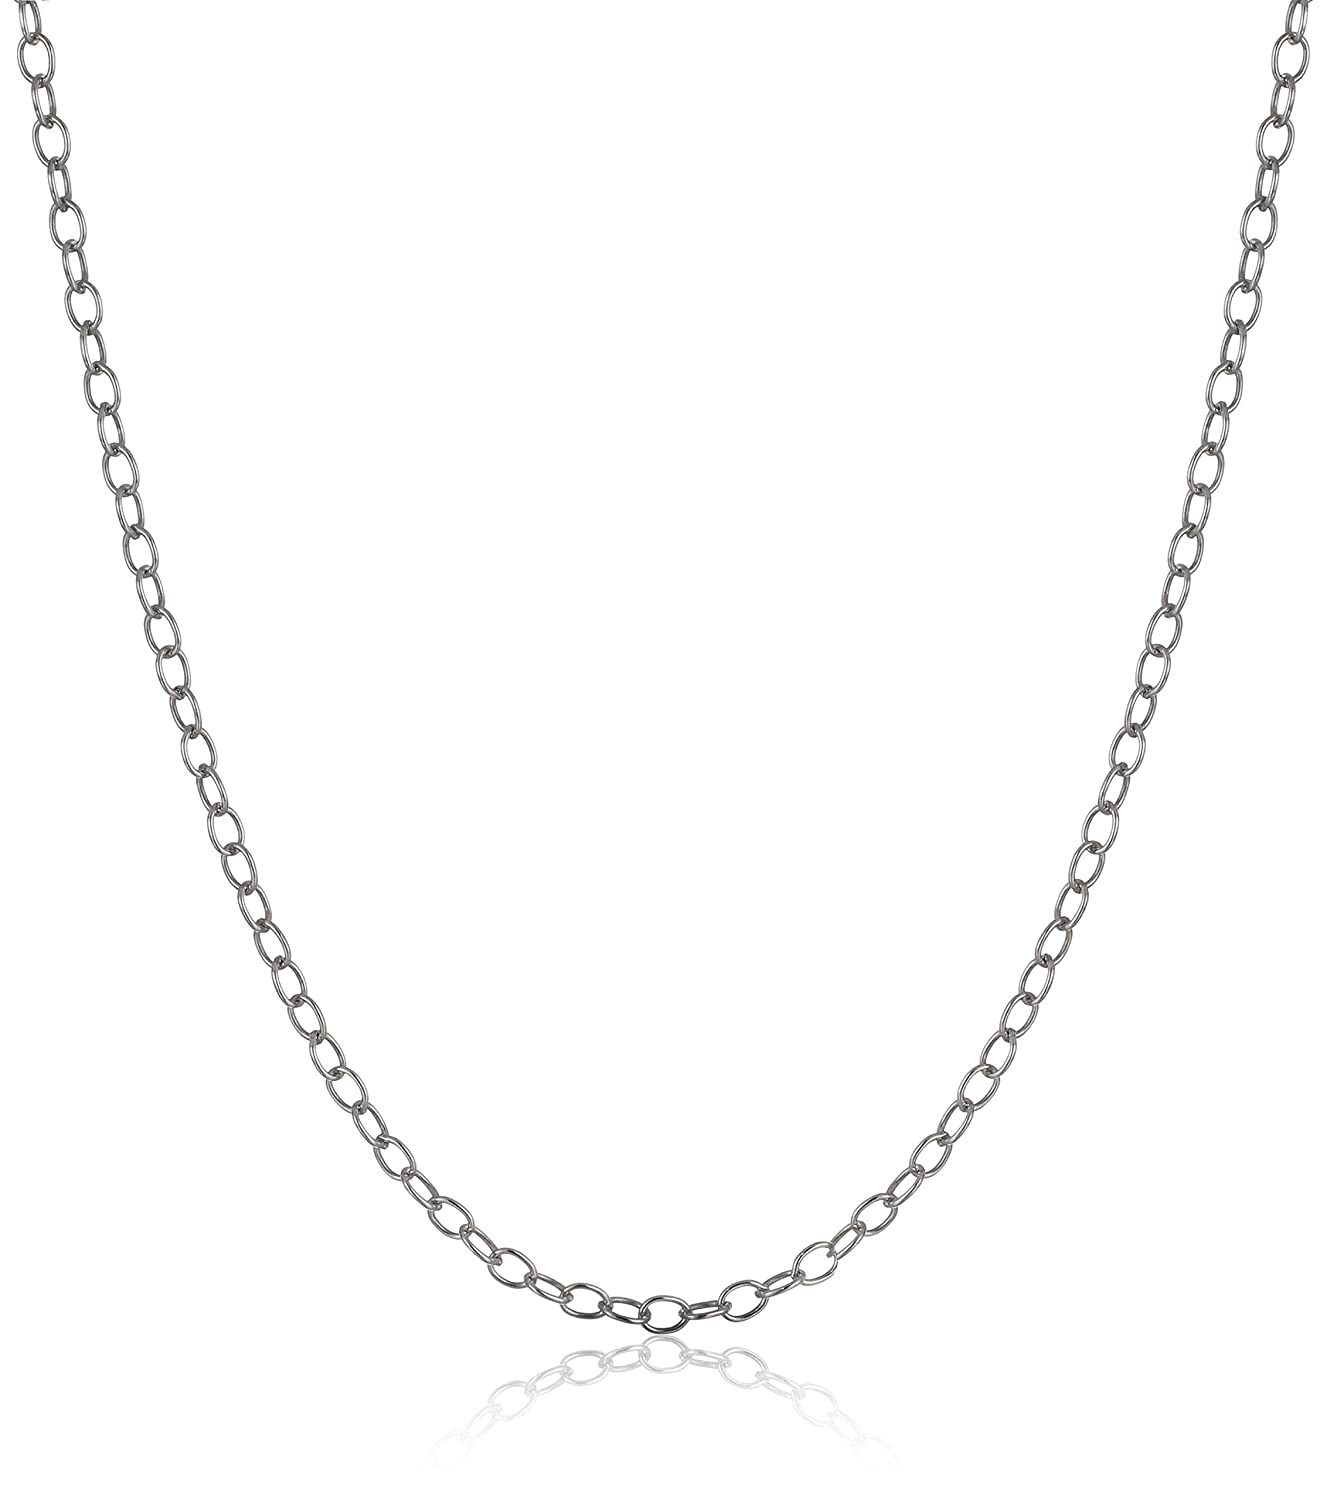 14k Gold Lightweight Rolo Chain 1.2mm Chain Necklace